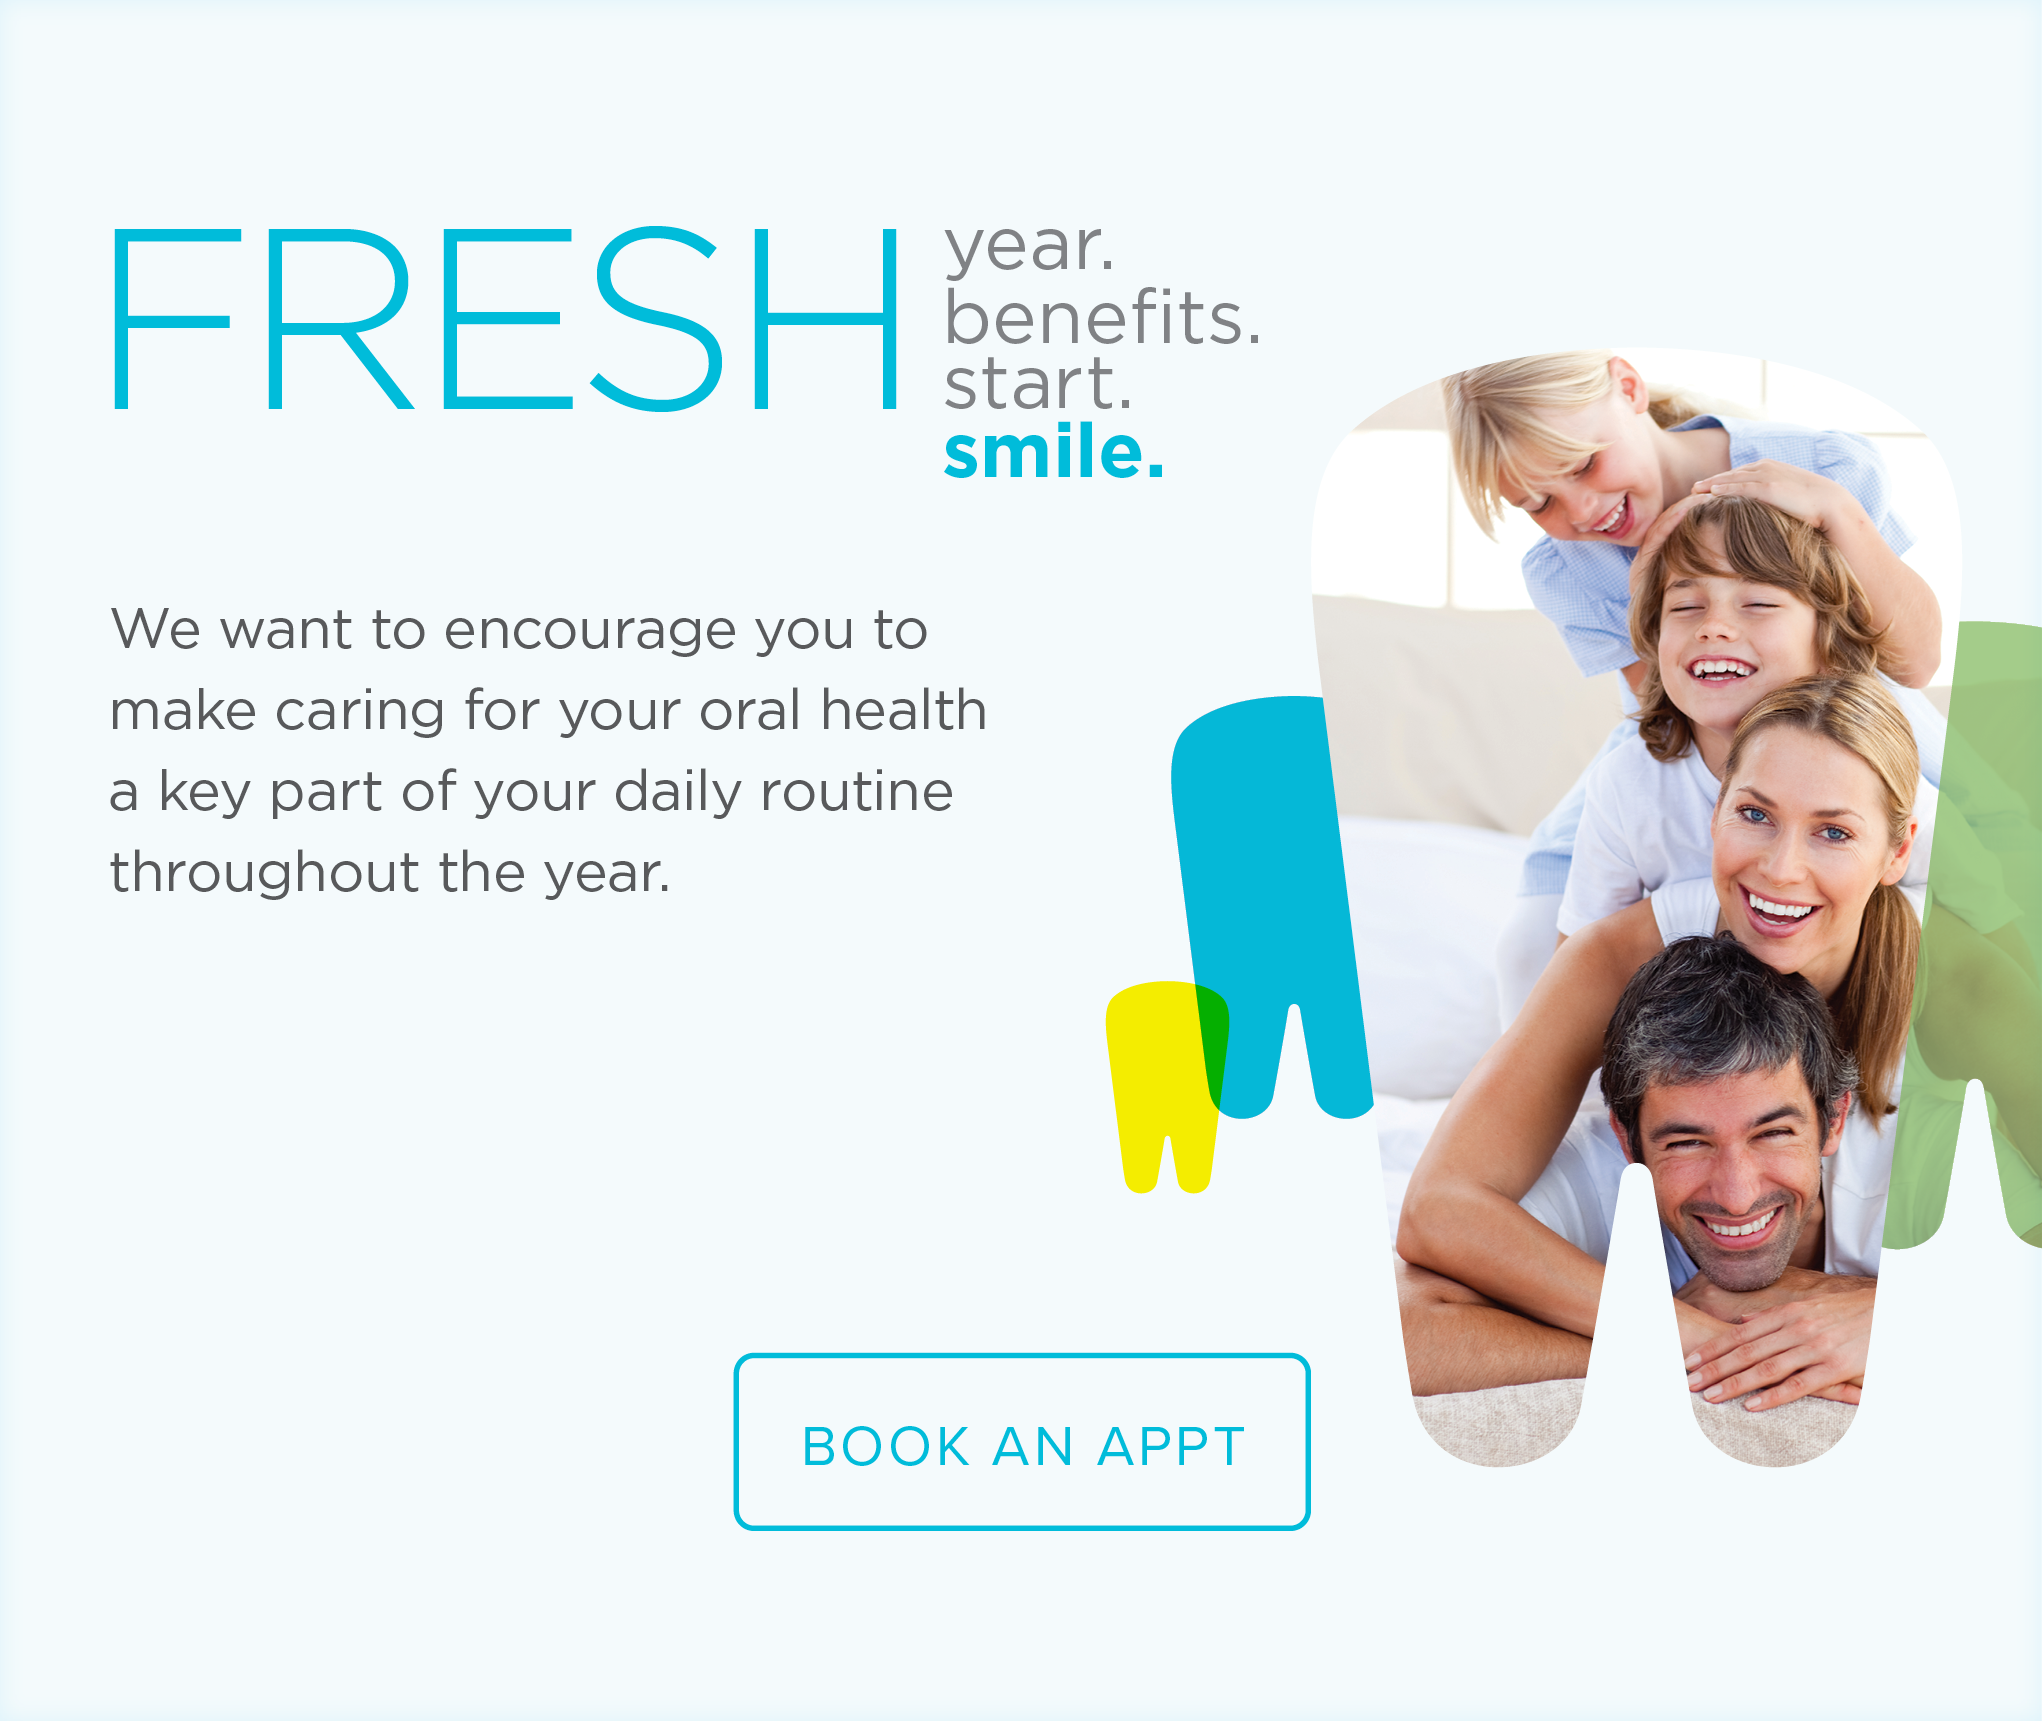 Green Valley Dental Group - Make the Most of Your Benefits